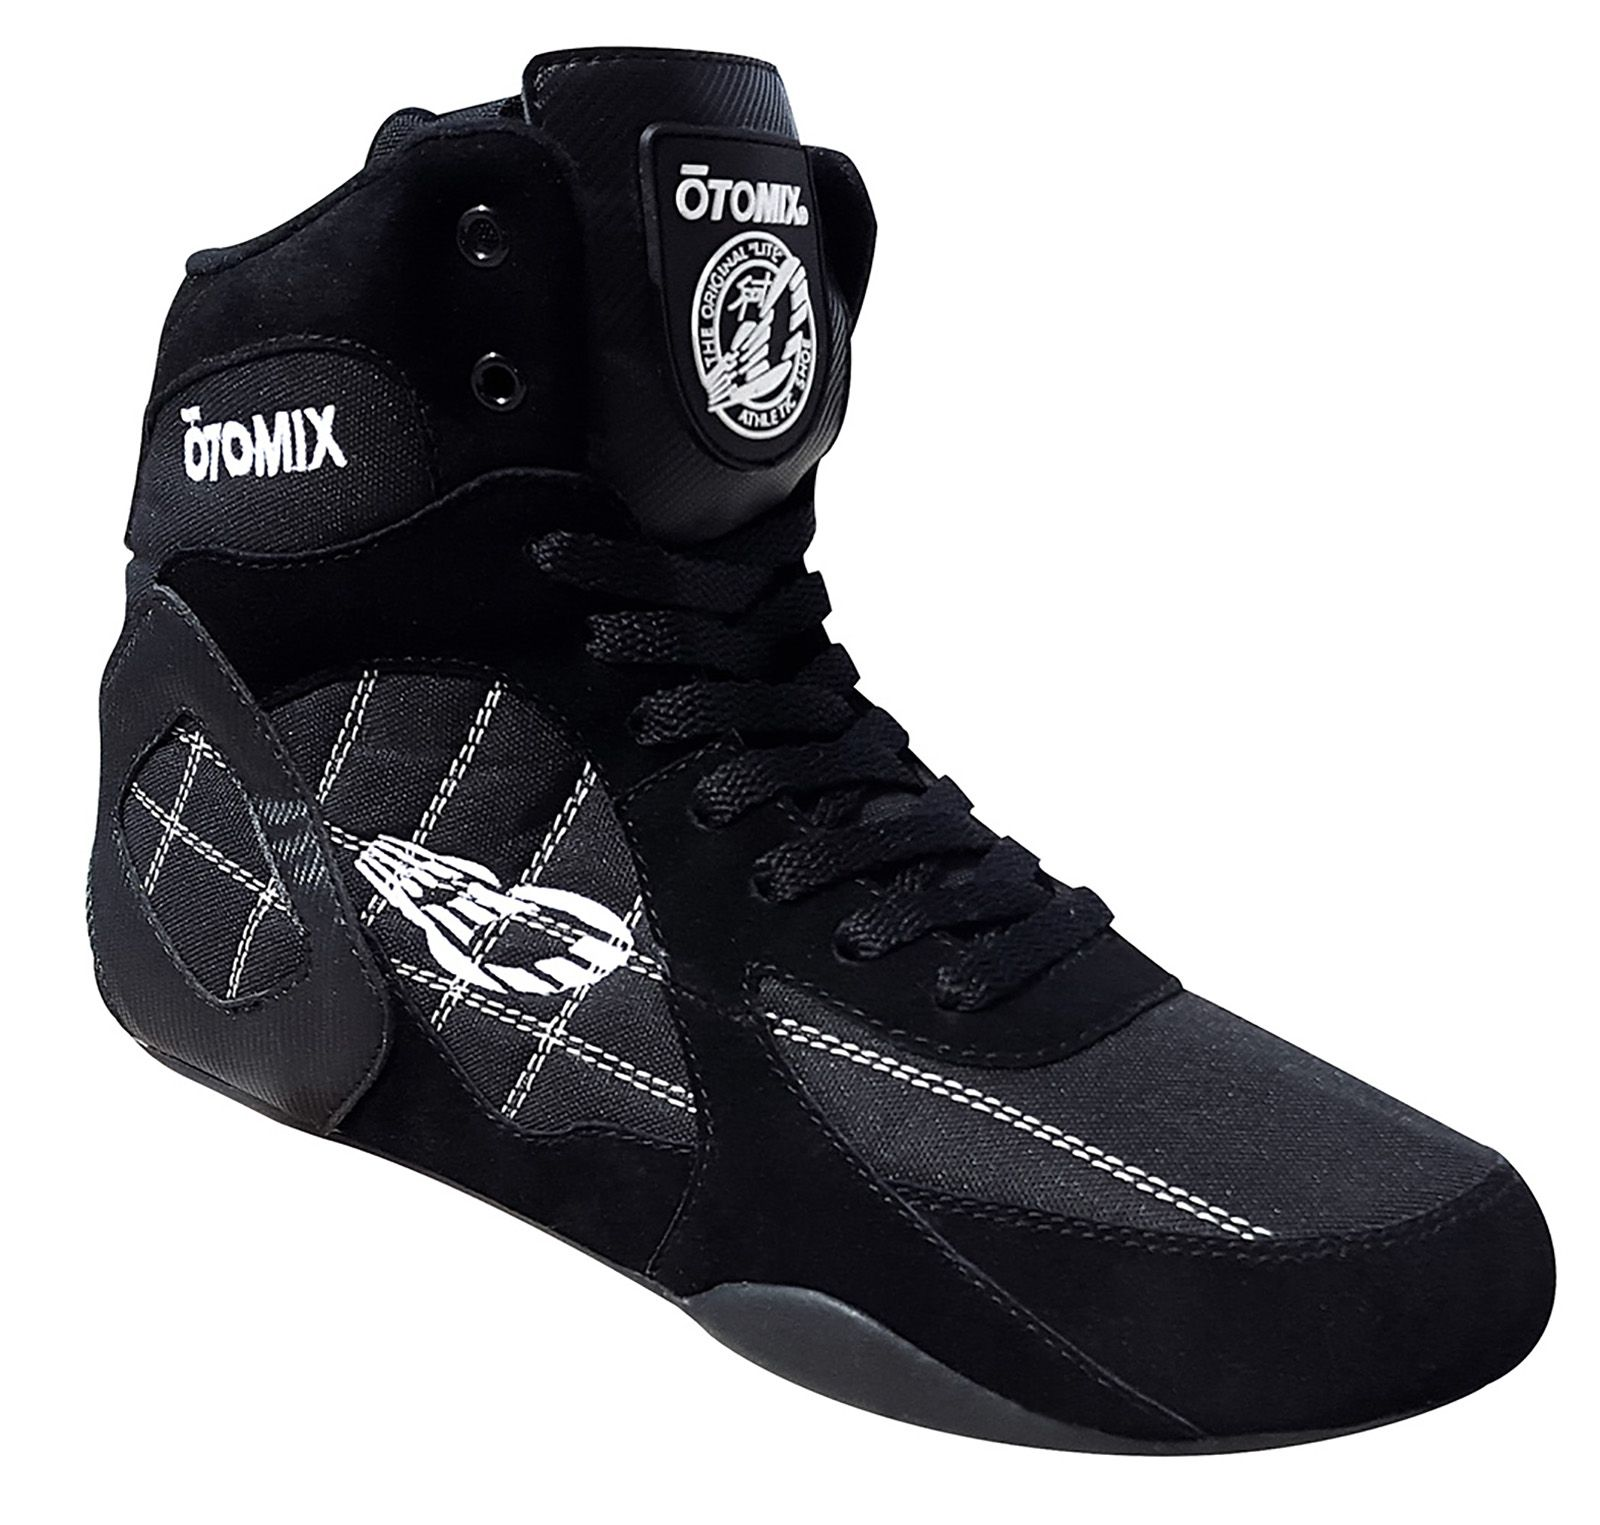 Otomix Ninja Warrior Stingray Bodybuilding Combat Shoe Men's (Black,. Find  this Pin and more on Weightlifting & Bodybuilding Shoes ...